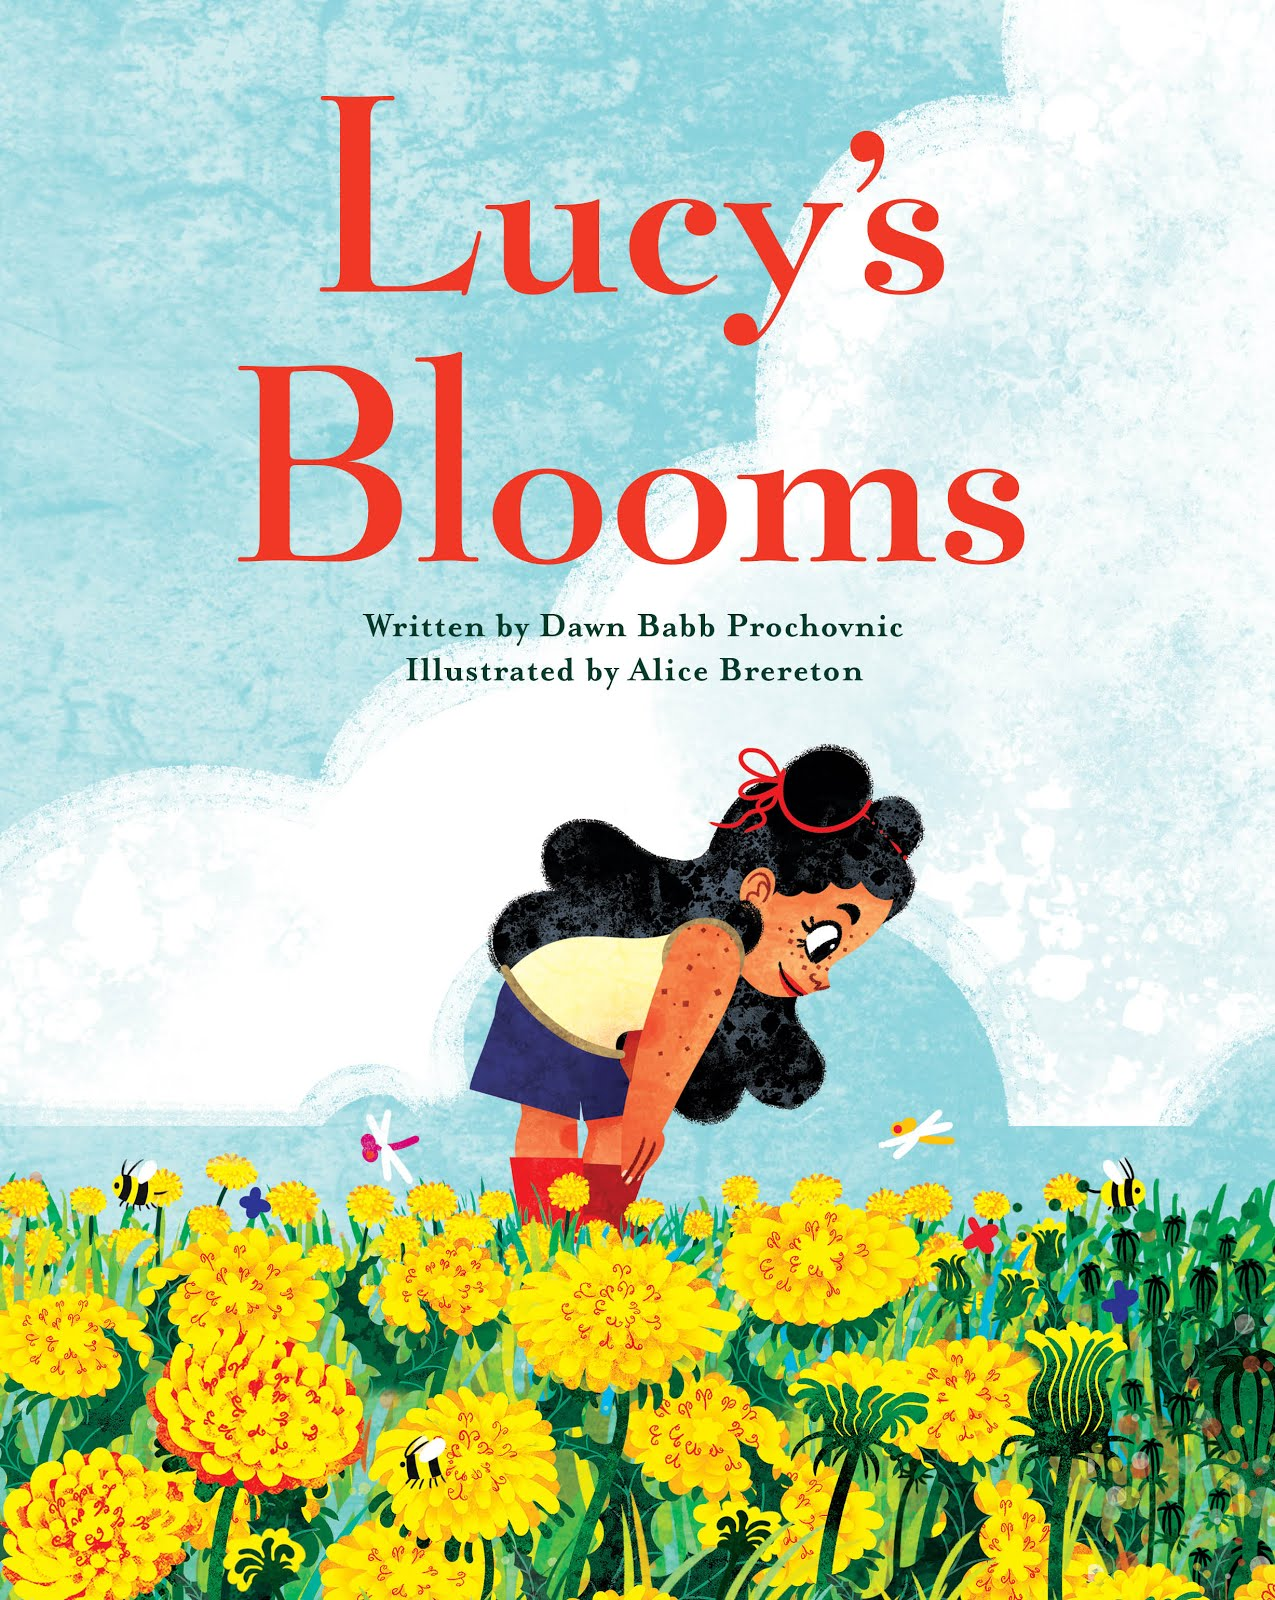 Click on the image below to view the book trailer for Lucy's Blooms, with music by Maiah Wynne!